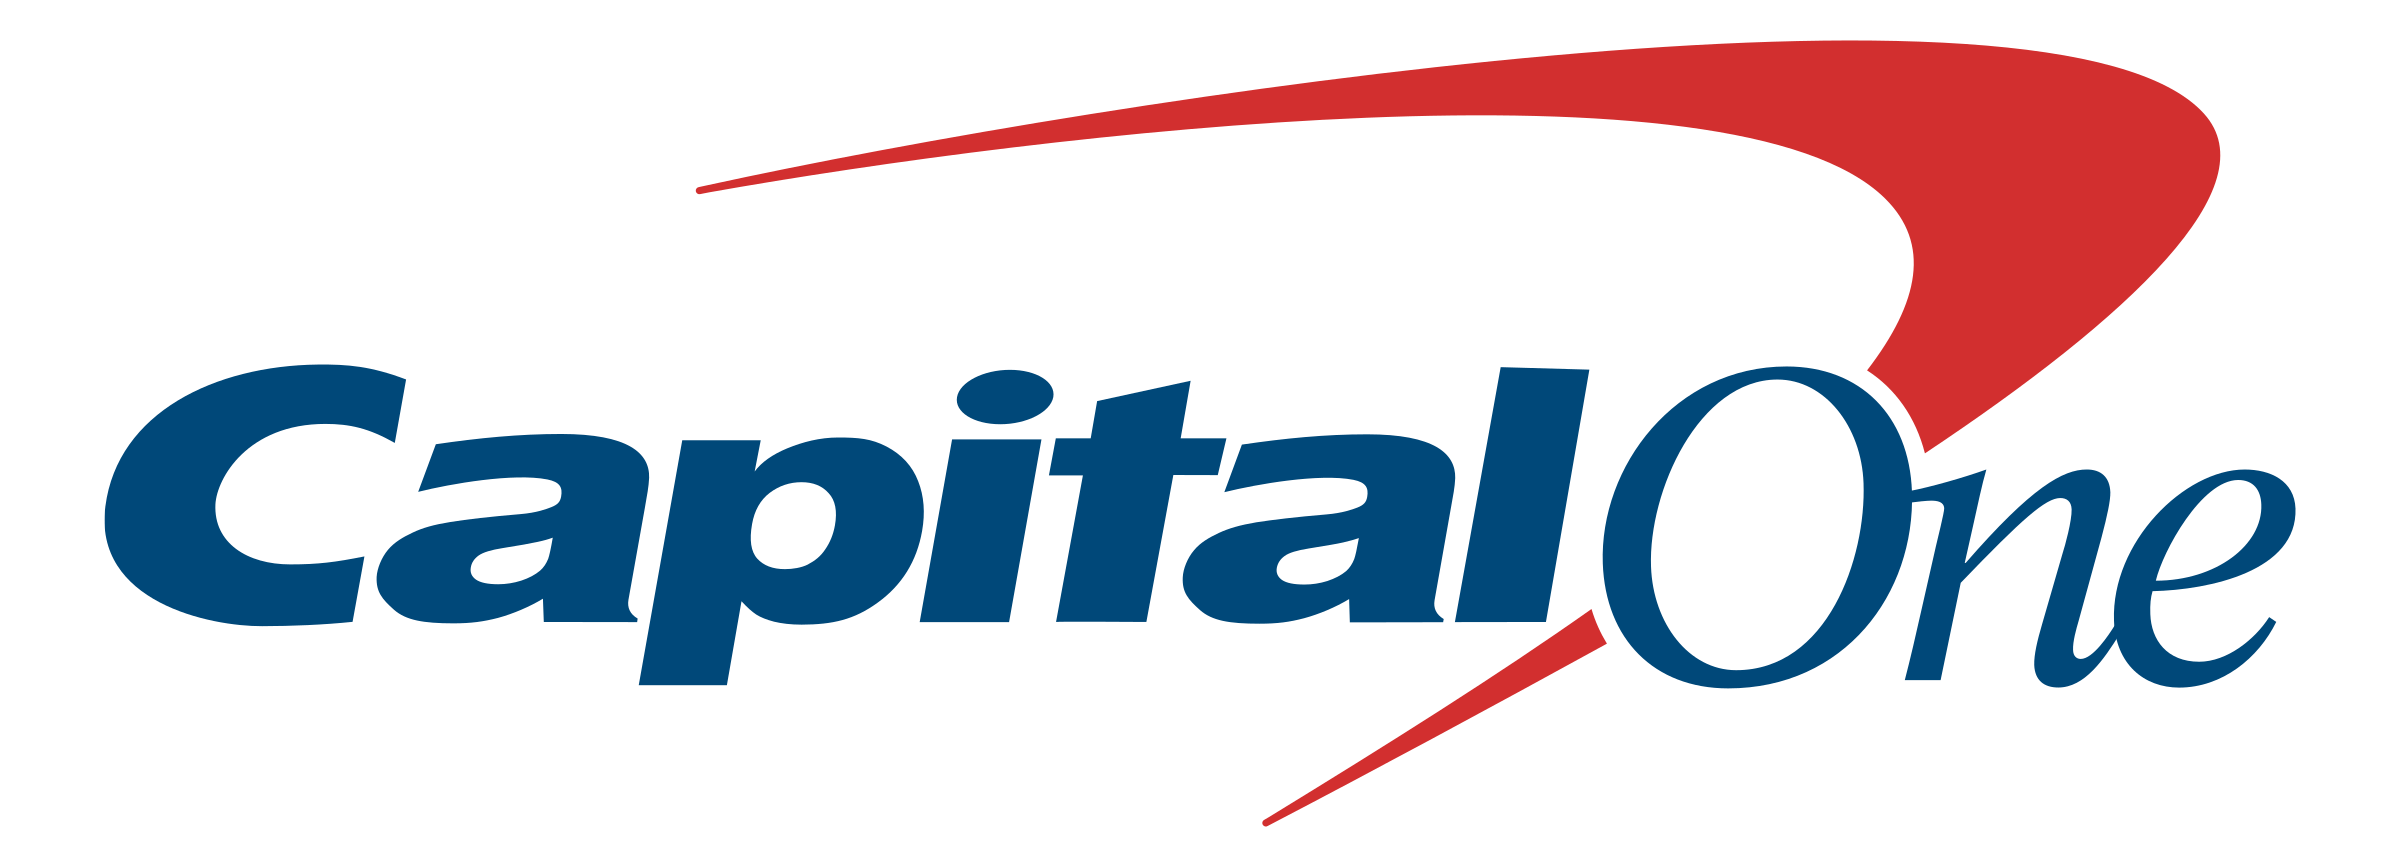 Capital One Logo PNG - Capital One Vector PNG